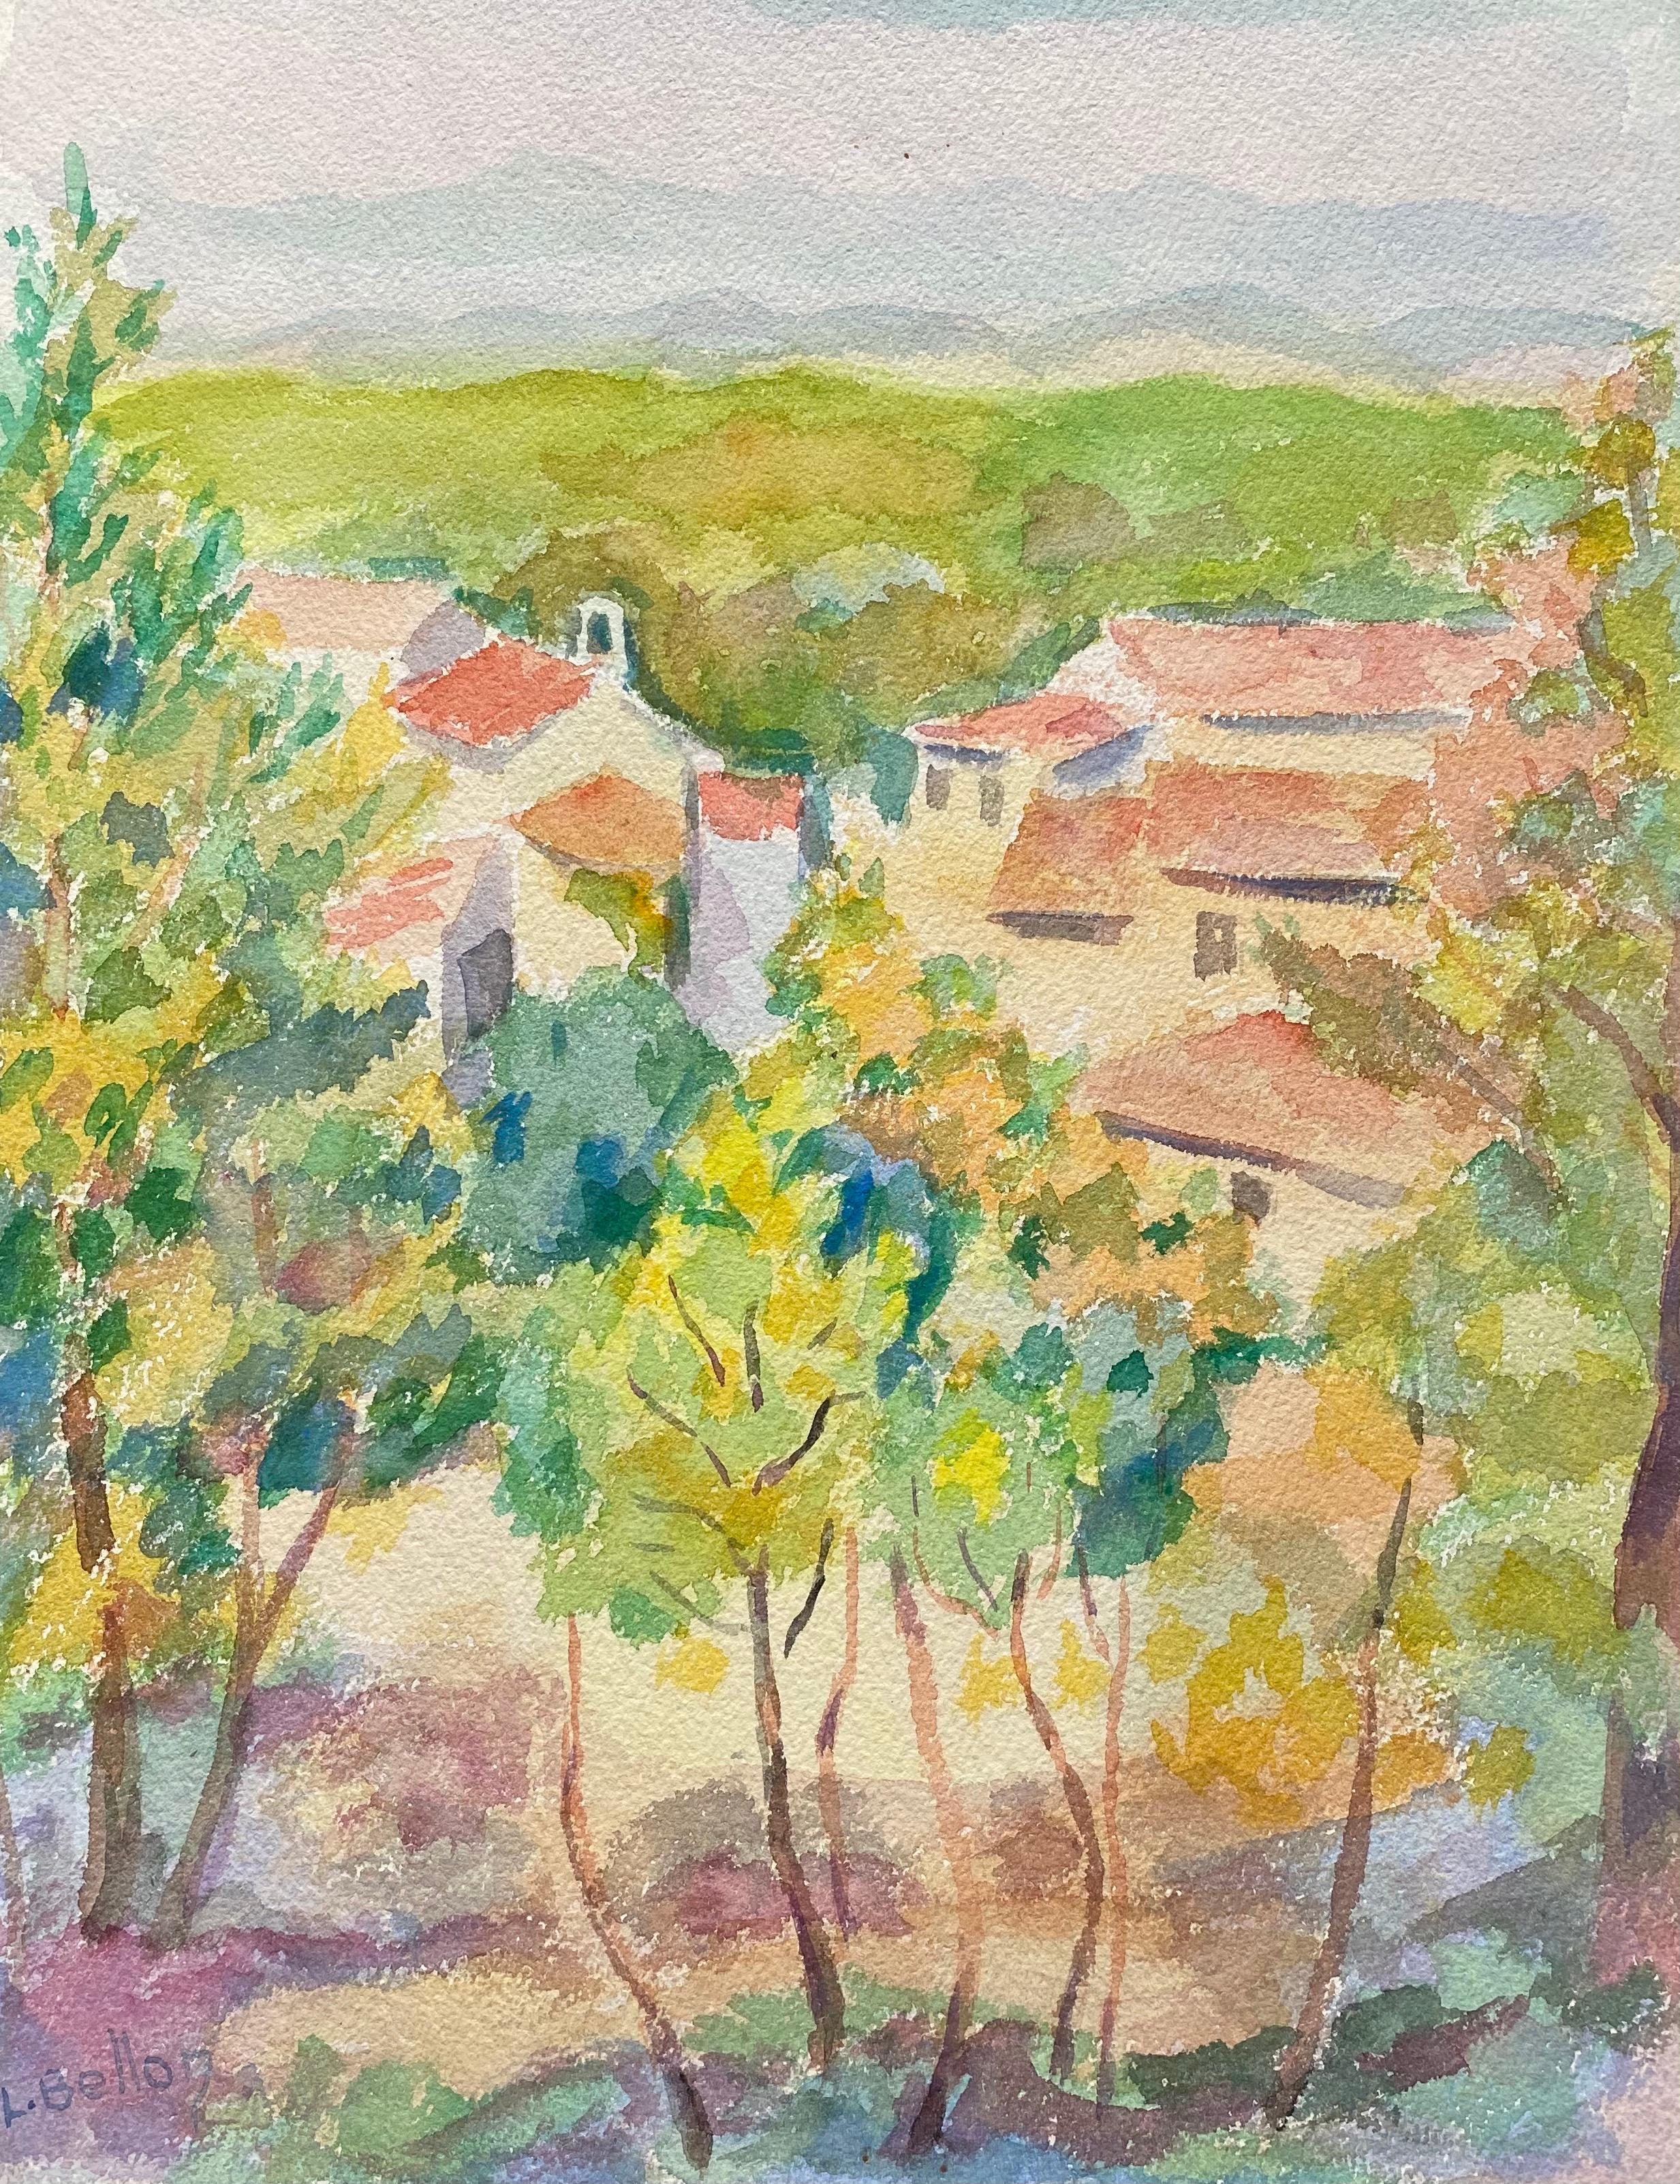 1940's Provence France Painting Old Town Landscape - Post Impressionist artist